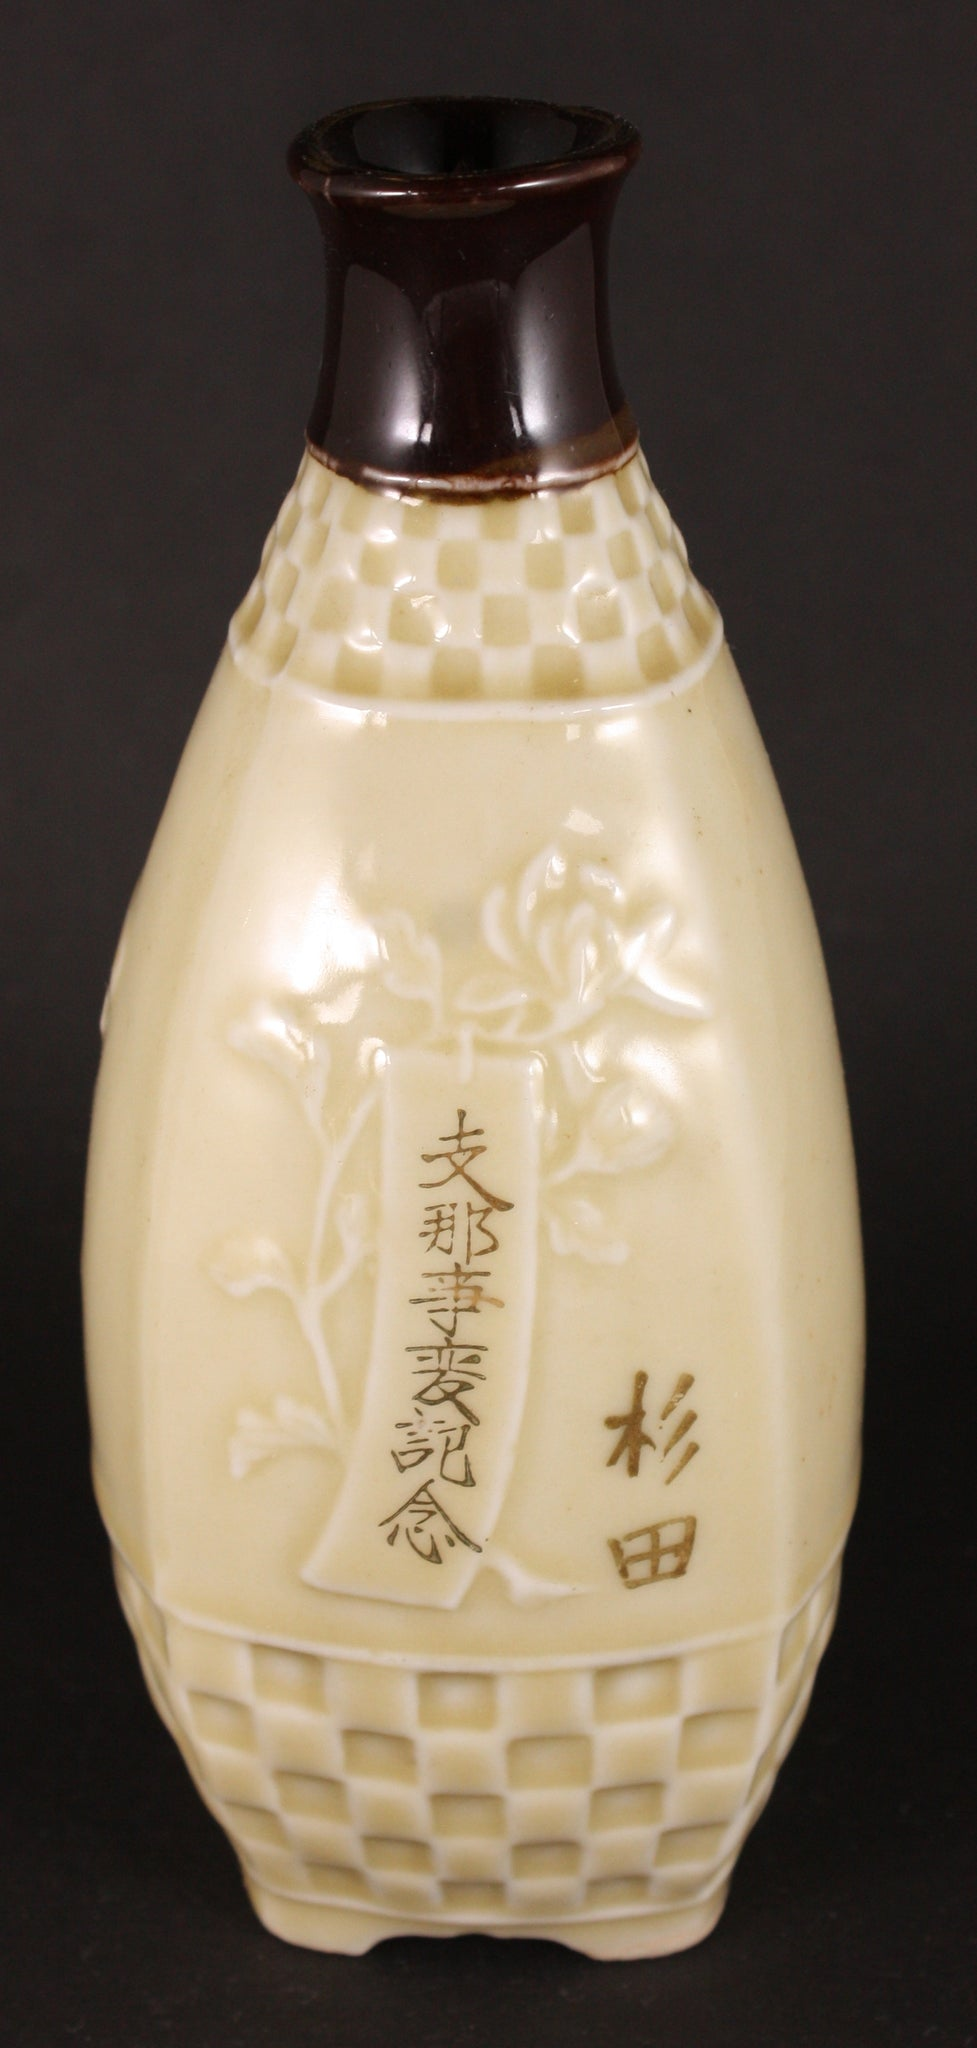 Antique Japanese Military WW2 Chinese City Gate Army Sake Bottle